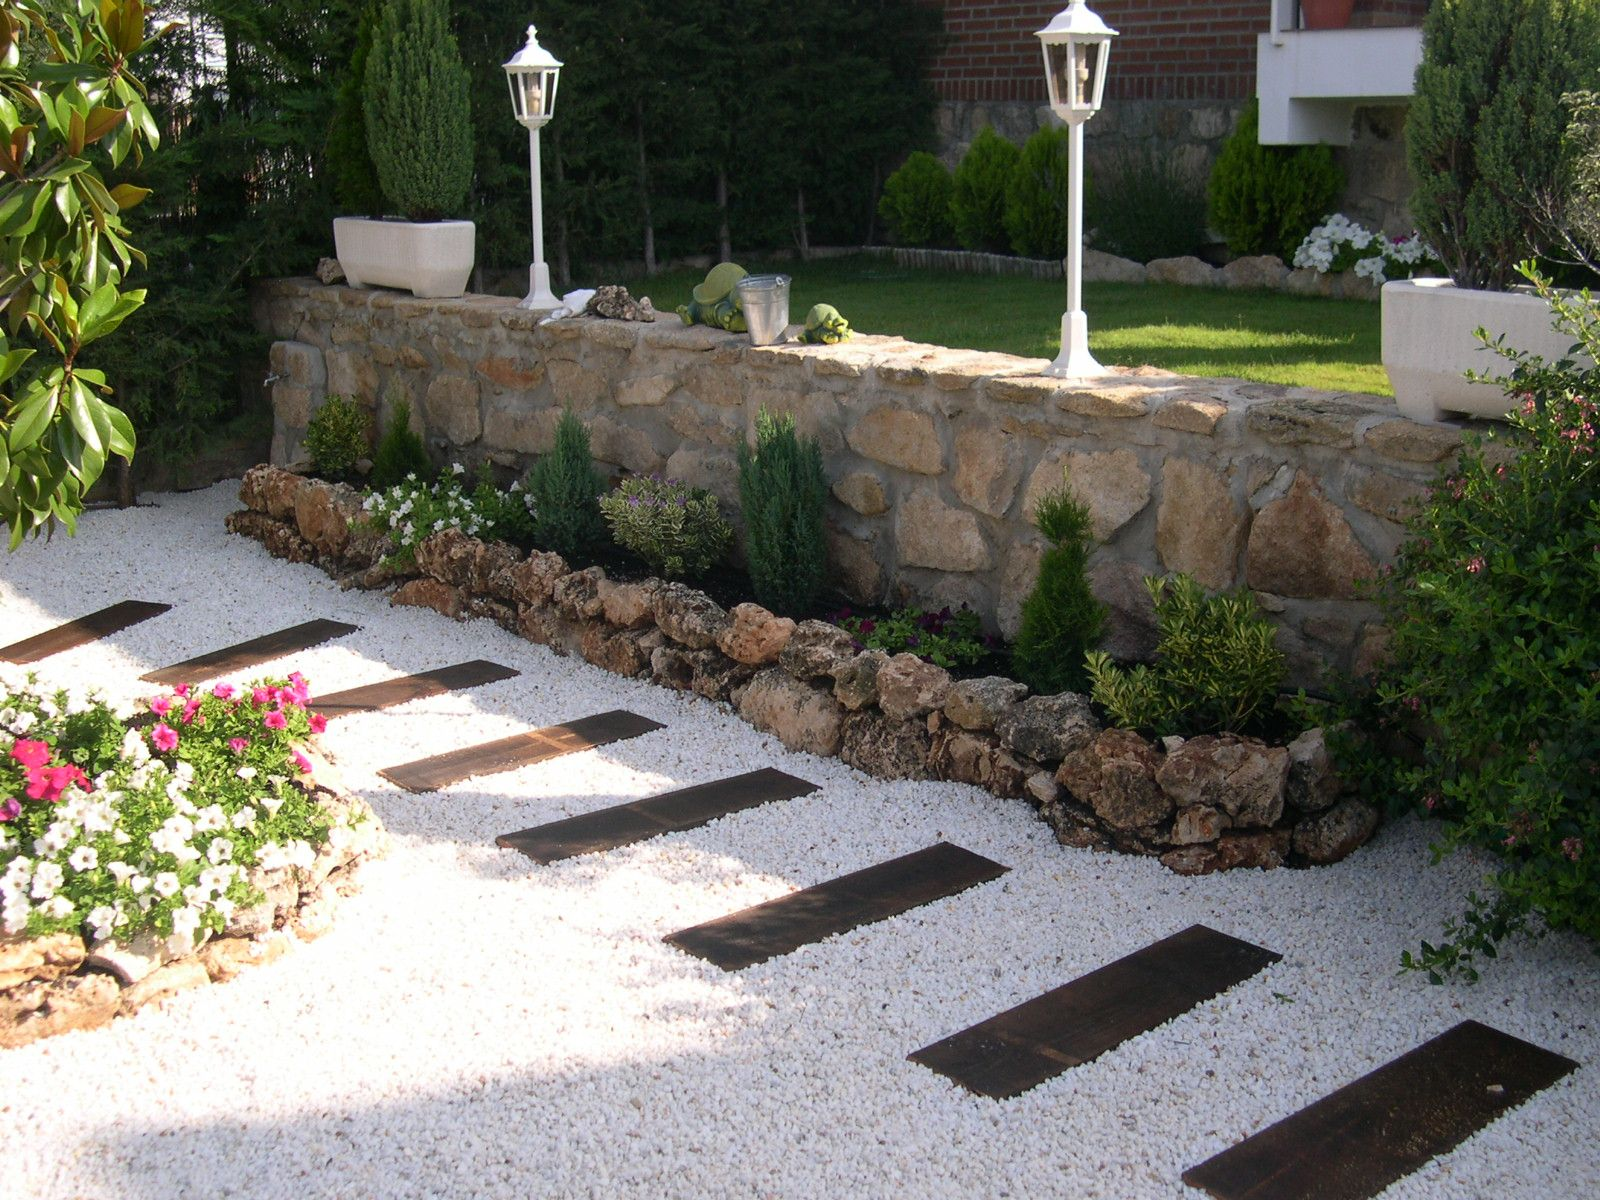 Pebble Garden Scroll Down For 12 Spectacular Pebble Garden That You Dream For